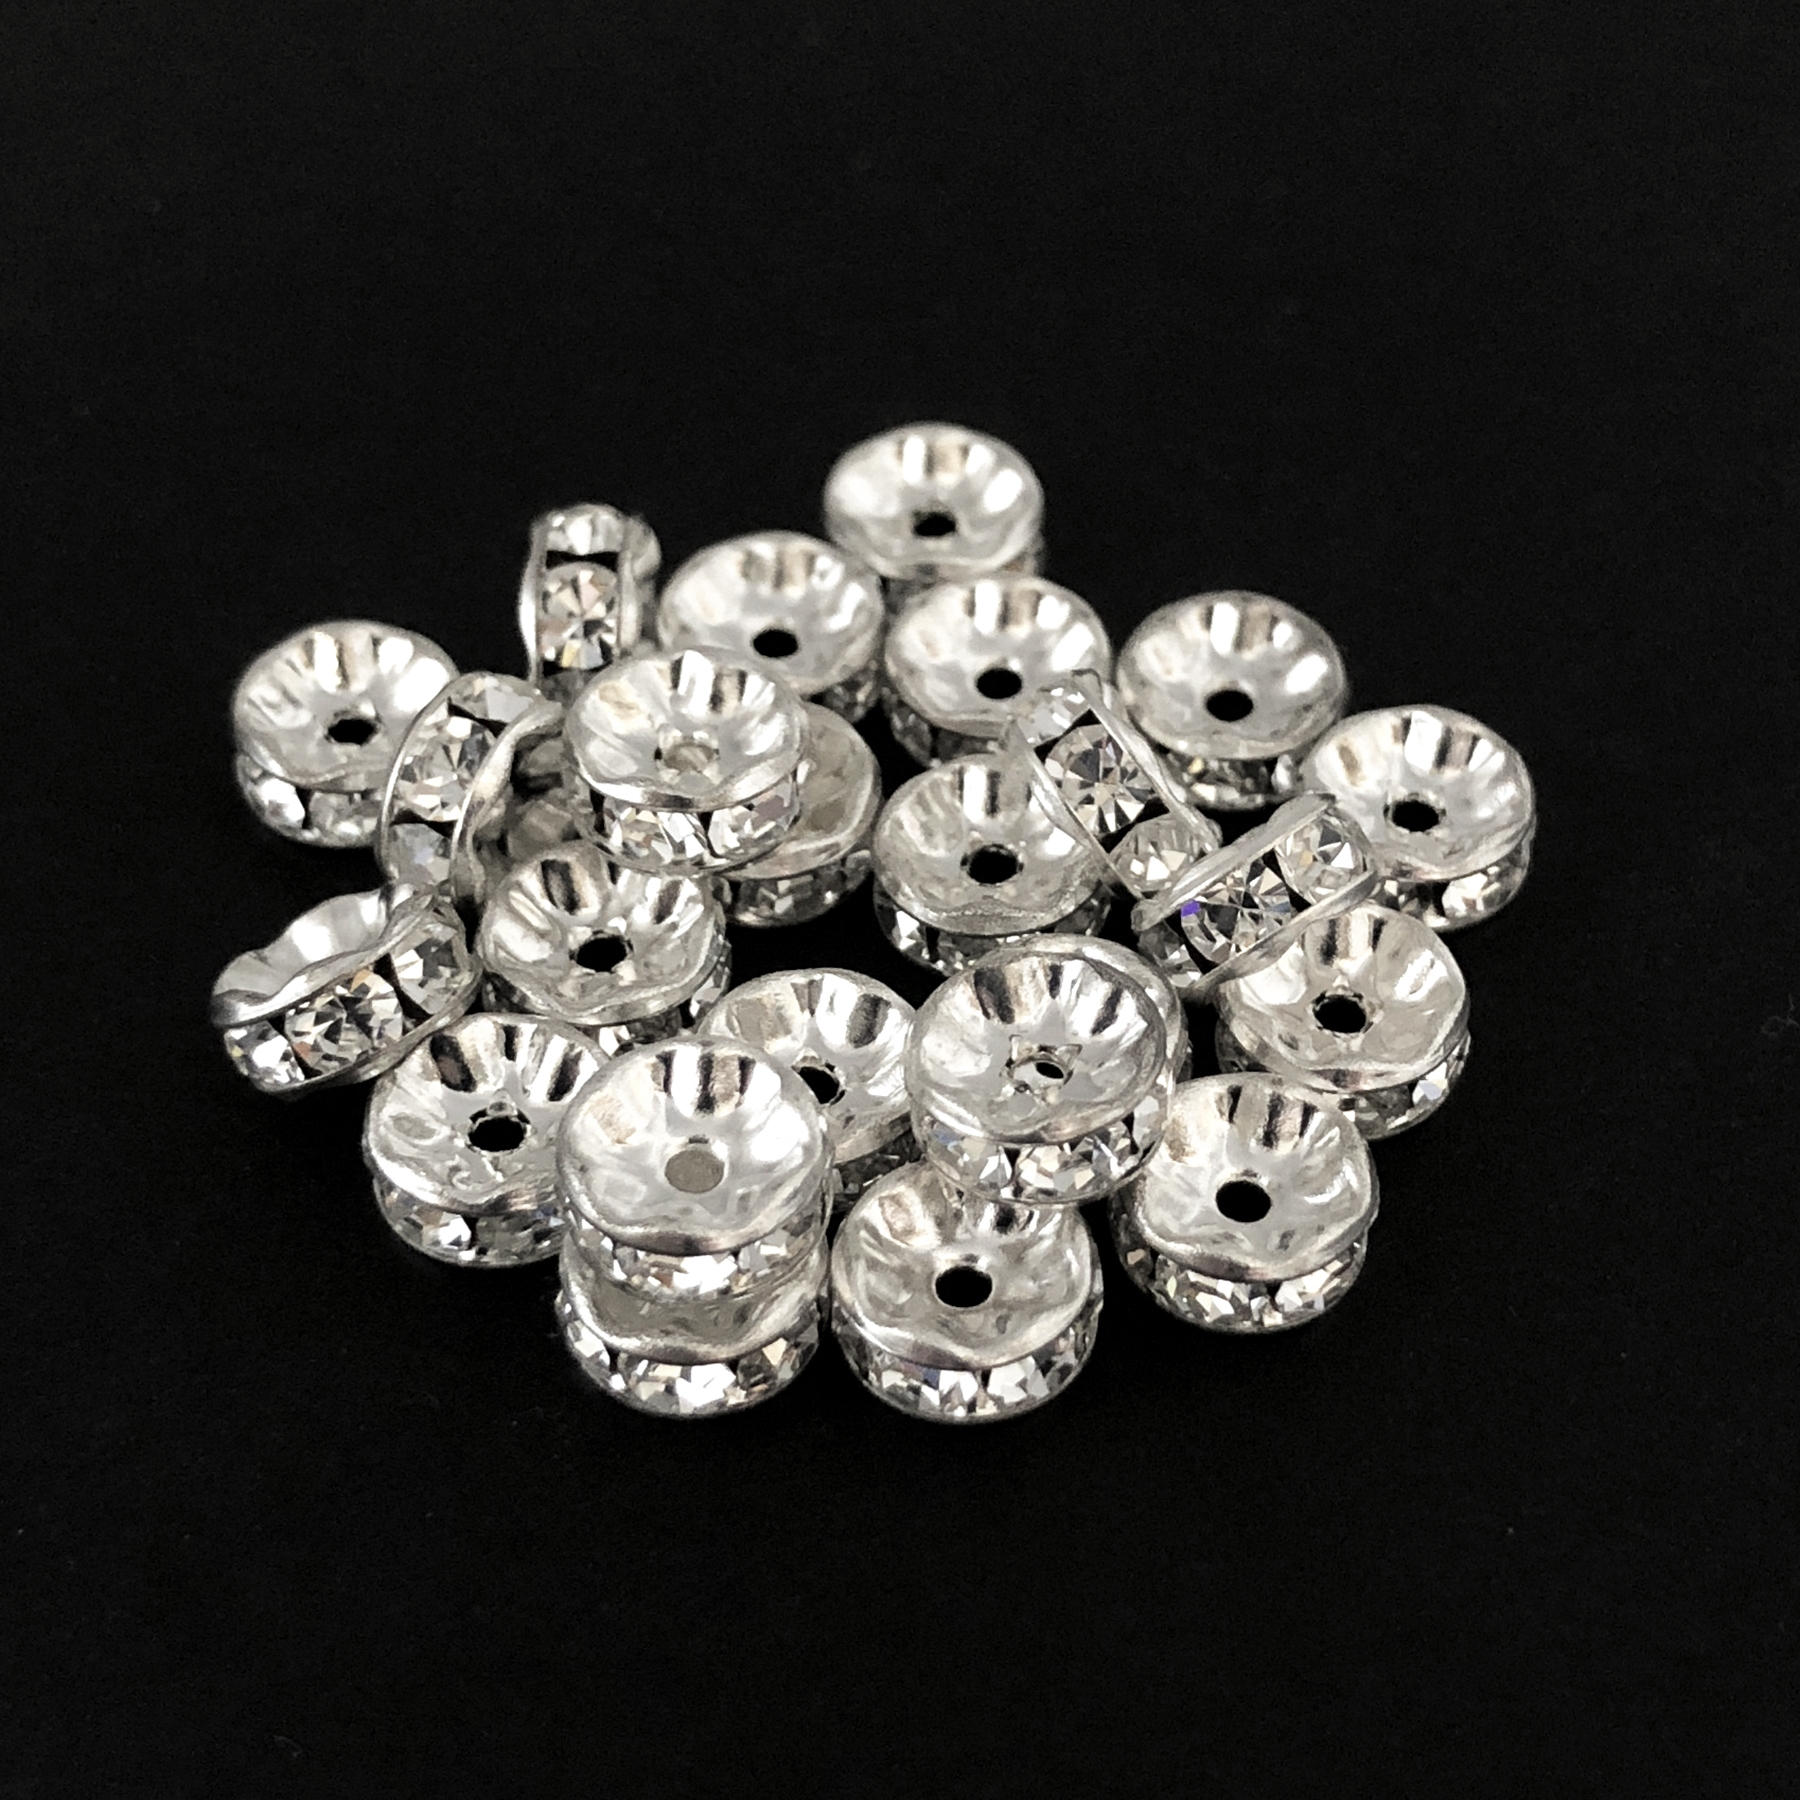 rhinestone rhondelles, crystal, silver, 7mm, 06094, vintage jewelry supplies, jewelry making supplies, Bsue Boutiques, US made, crystal rhinestones, Czech glass beads, crystal rhinestone beads, crystal rondelle,